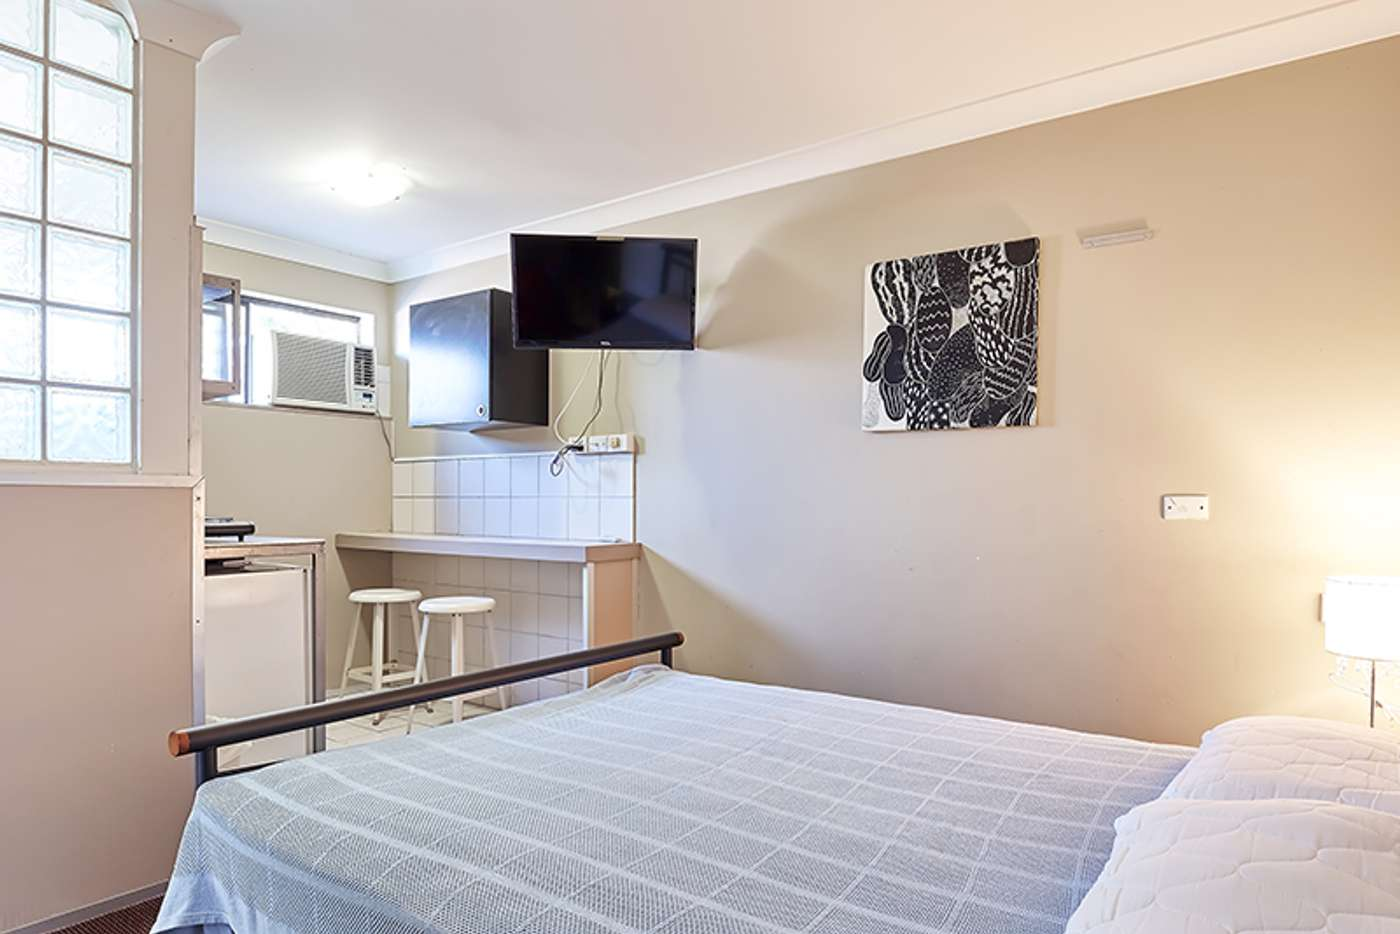 Main view of Homely unit listing, 105/204 Ipswich Road, Woolloongabba QLD 4102